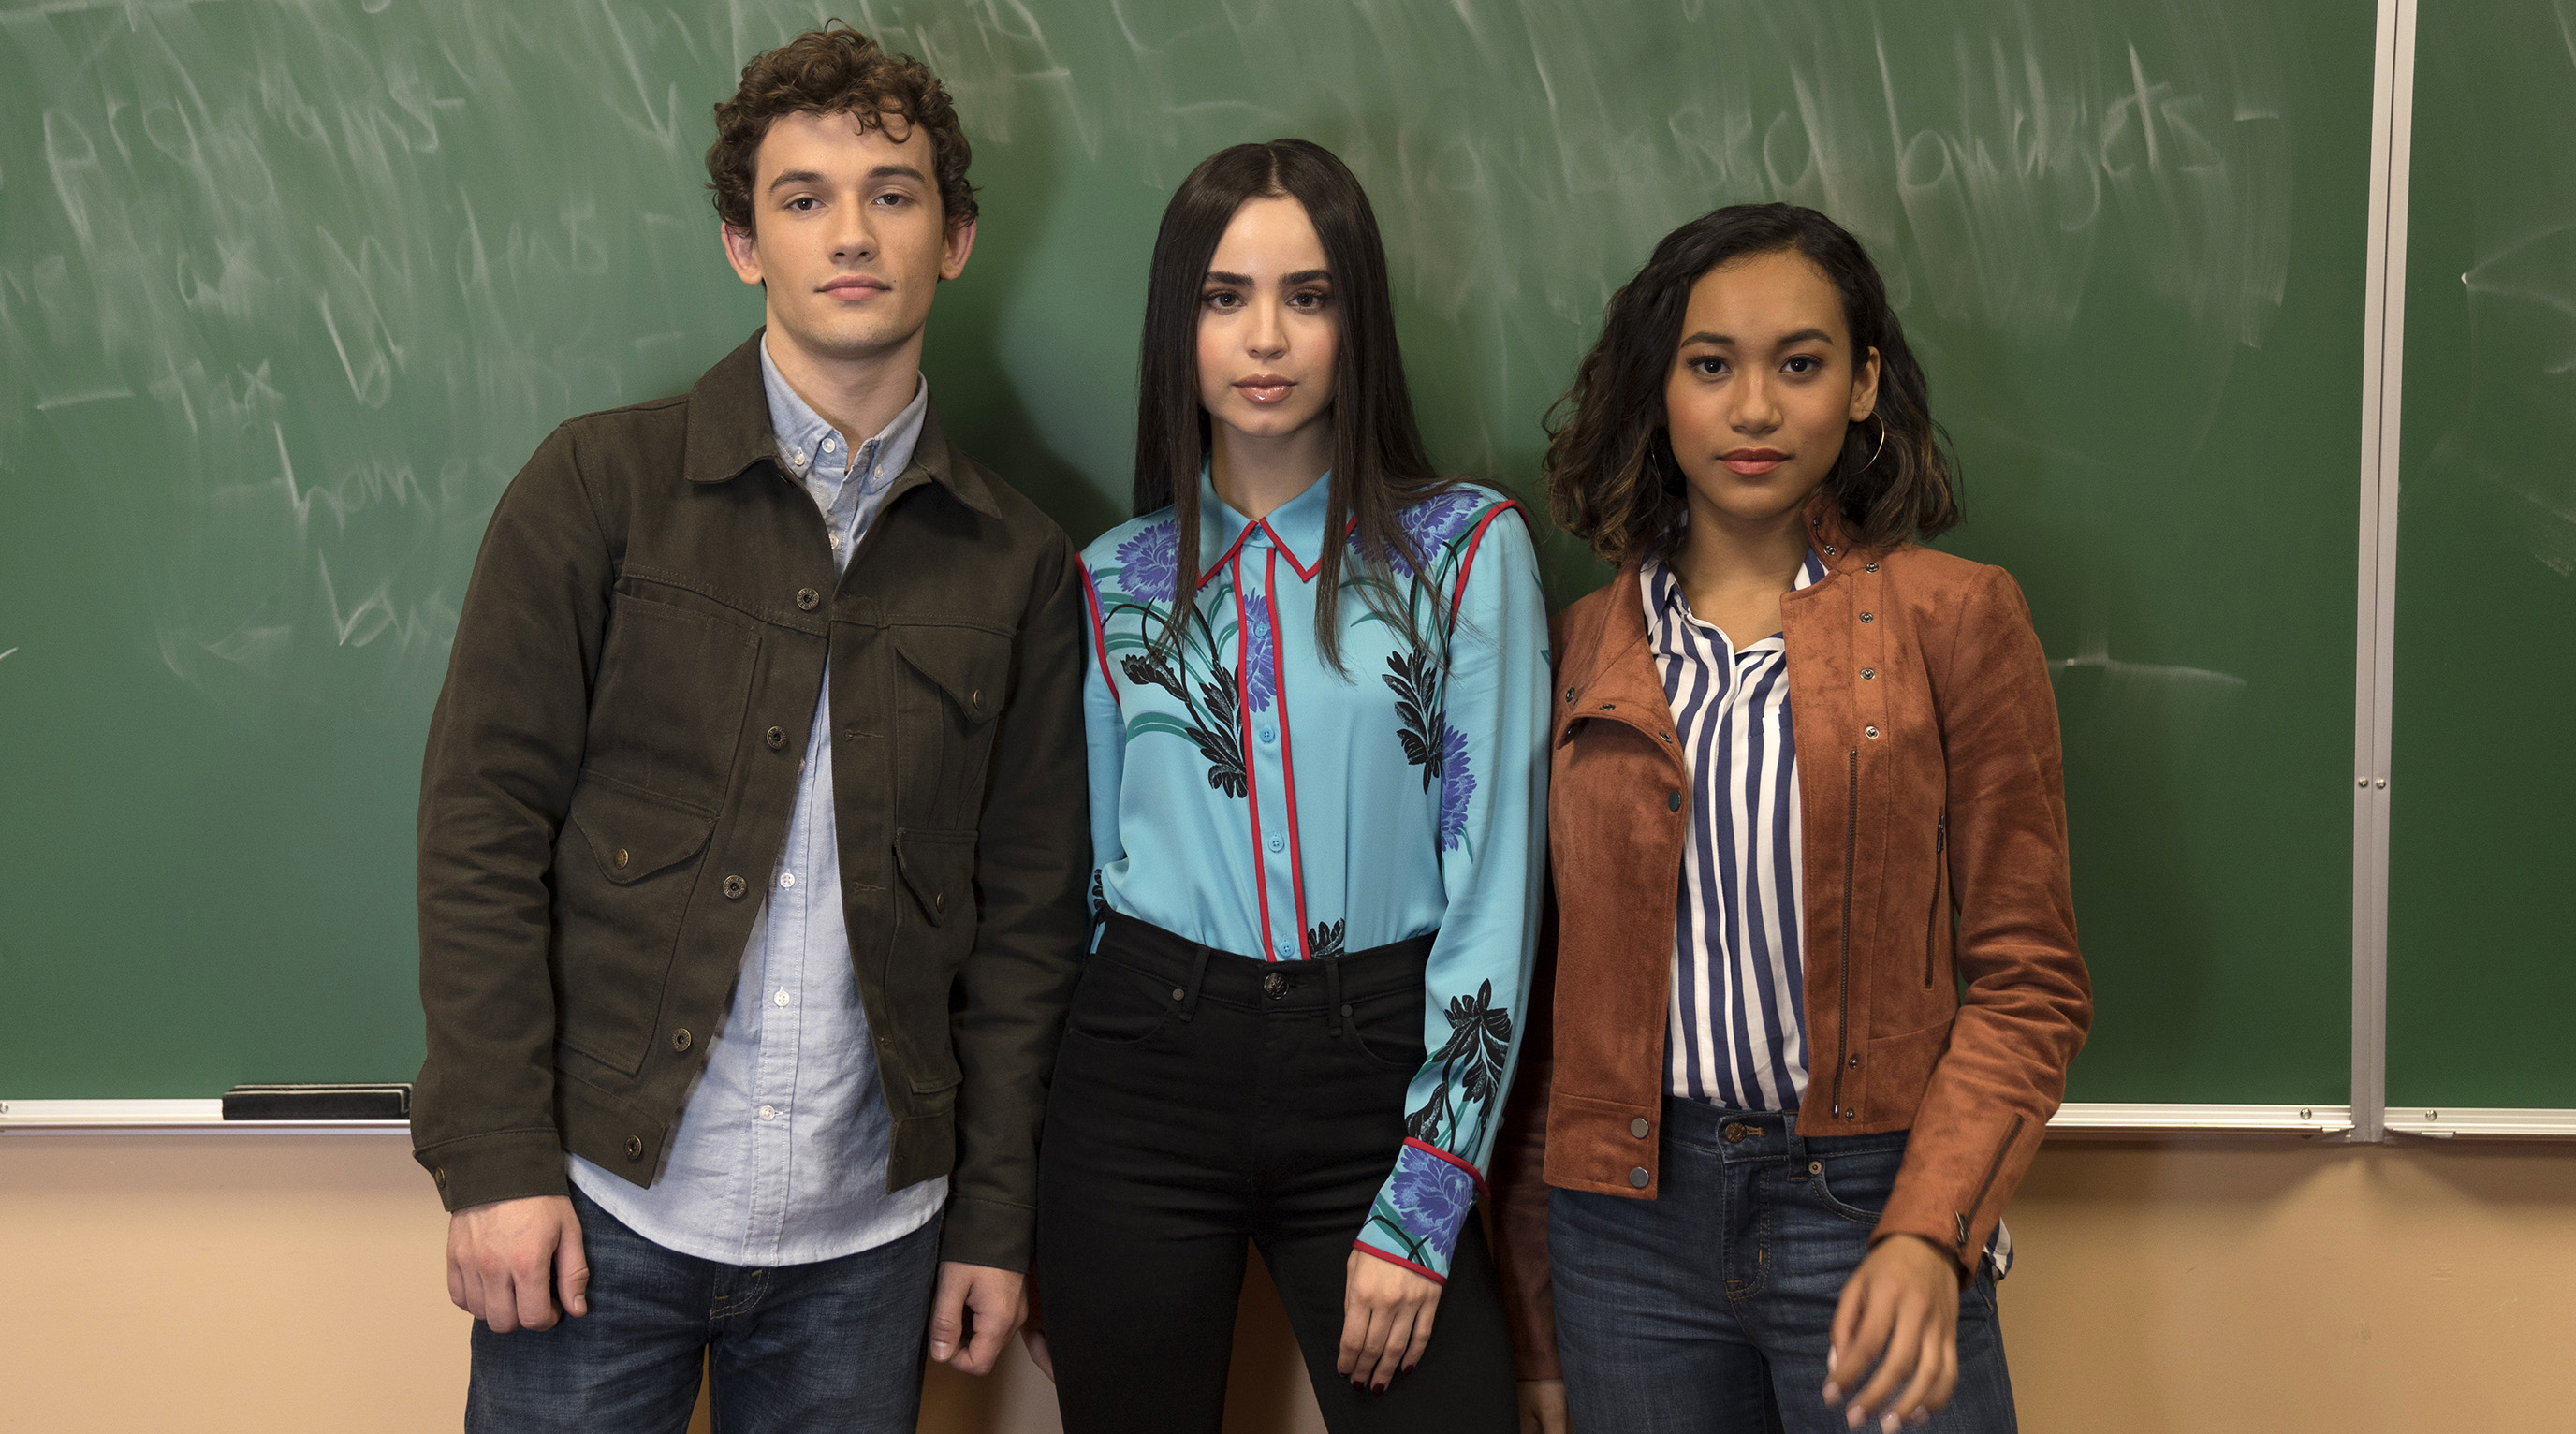 """Freeform's """"Pretty Little Liars: The Perfectionists"""" stars Eli Brown as Dylan, Sofia Carson as Ava, and Sydney Park as Caitlyn. [Freeform/Allyson Riggs]"""